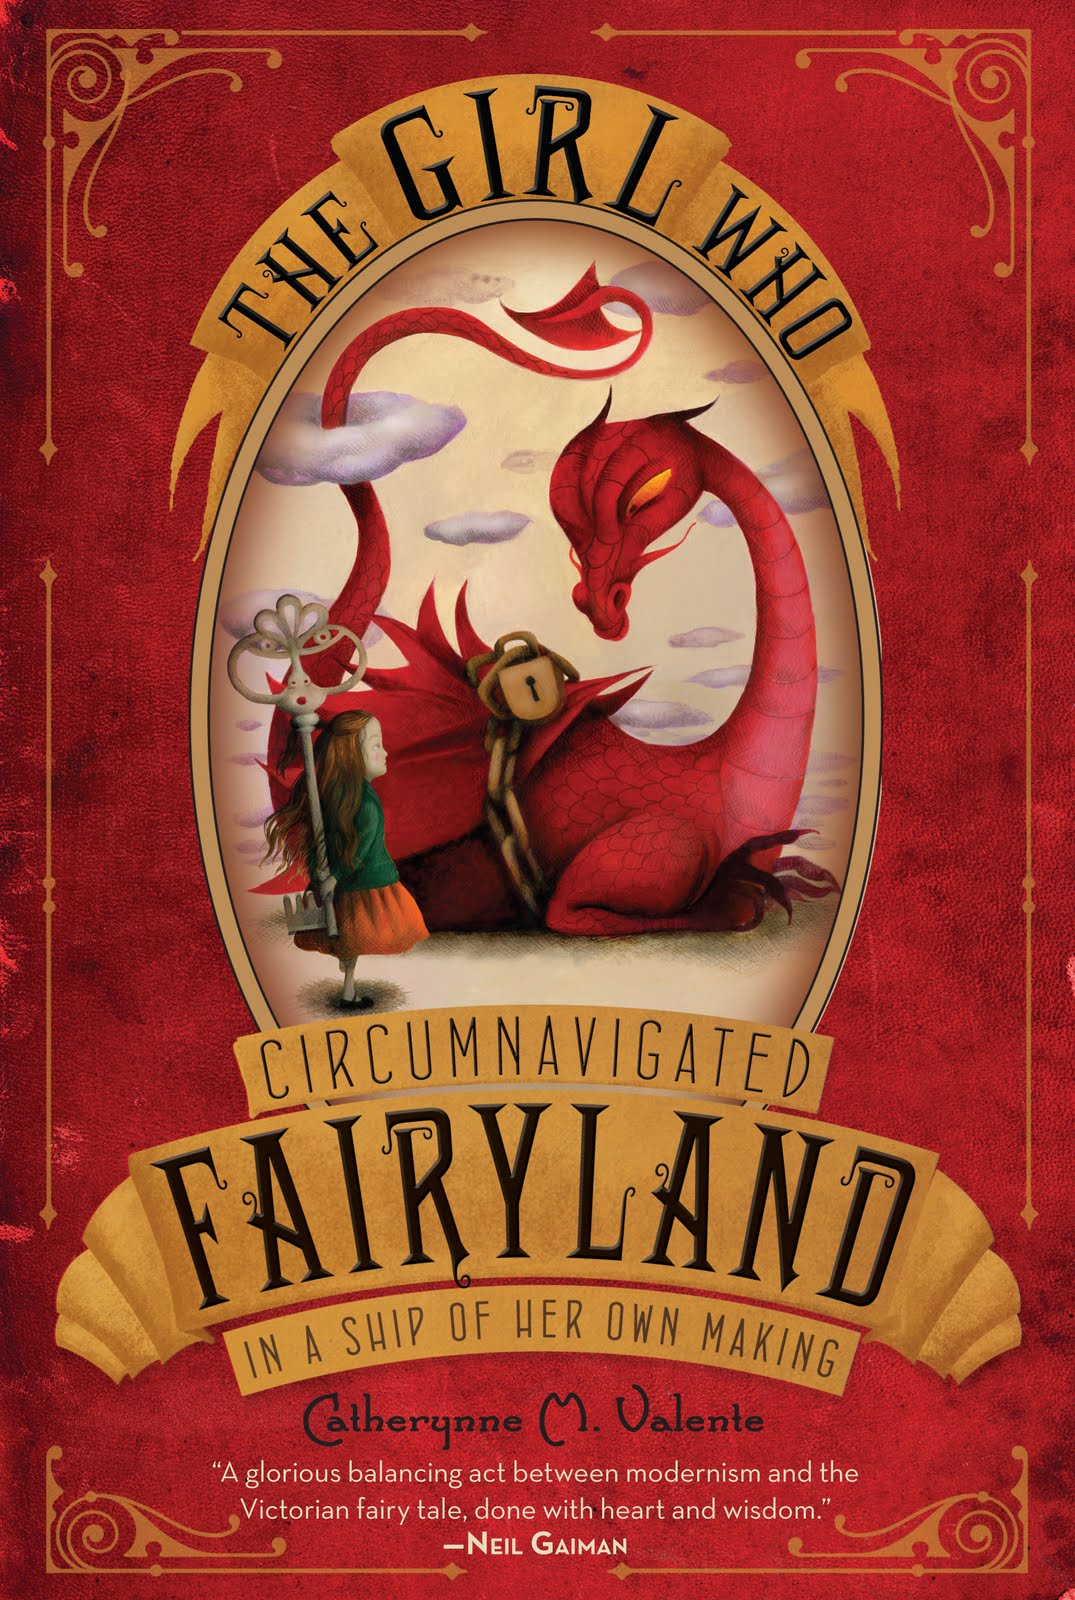 girlwhocircumnavigatedfairyland Can a gay man who abstains from sex still be gay?